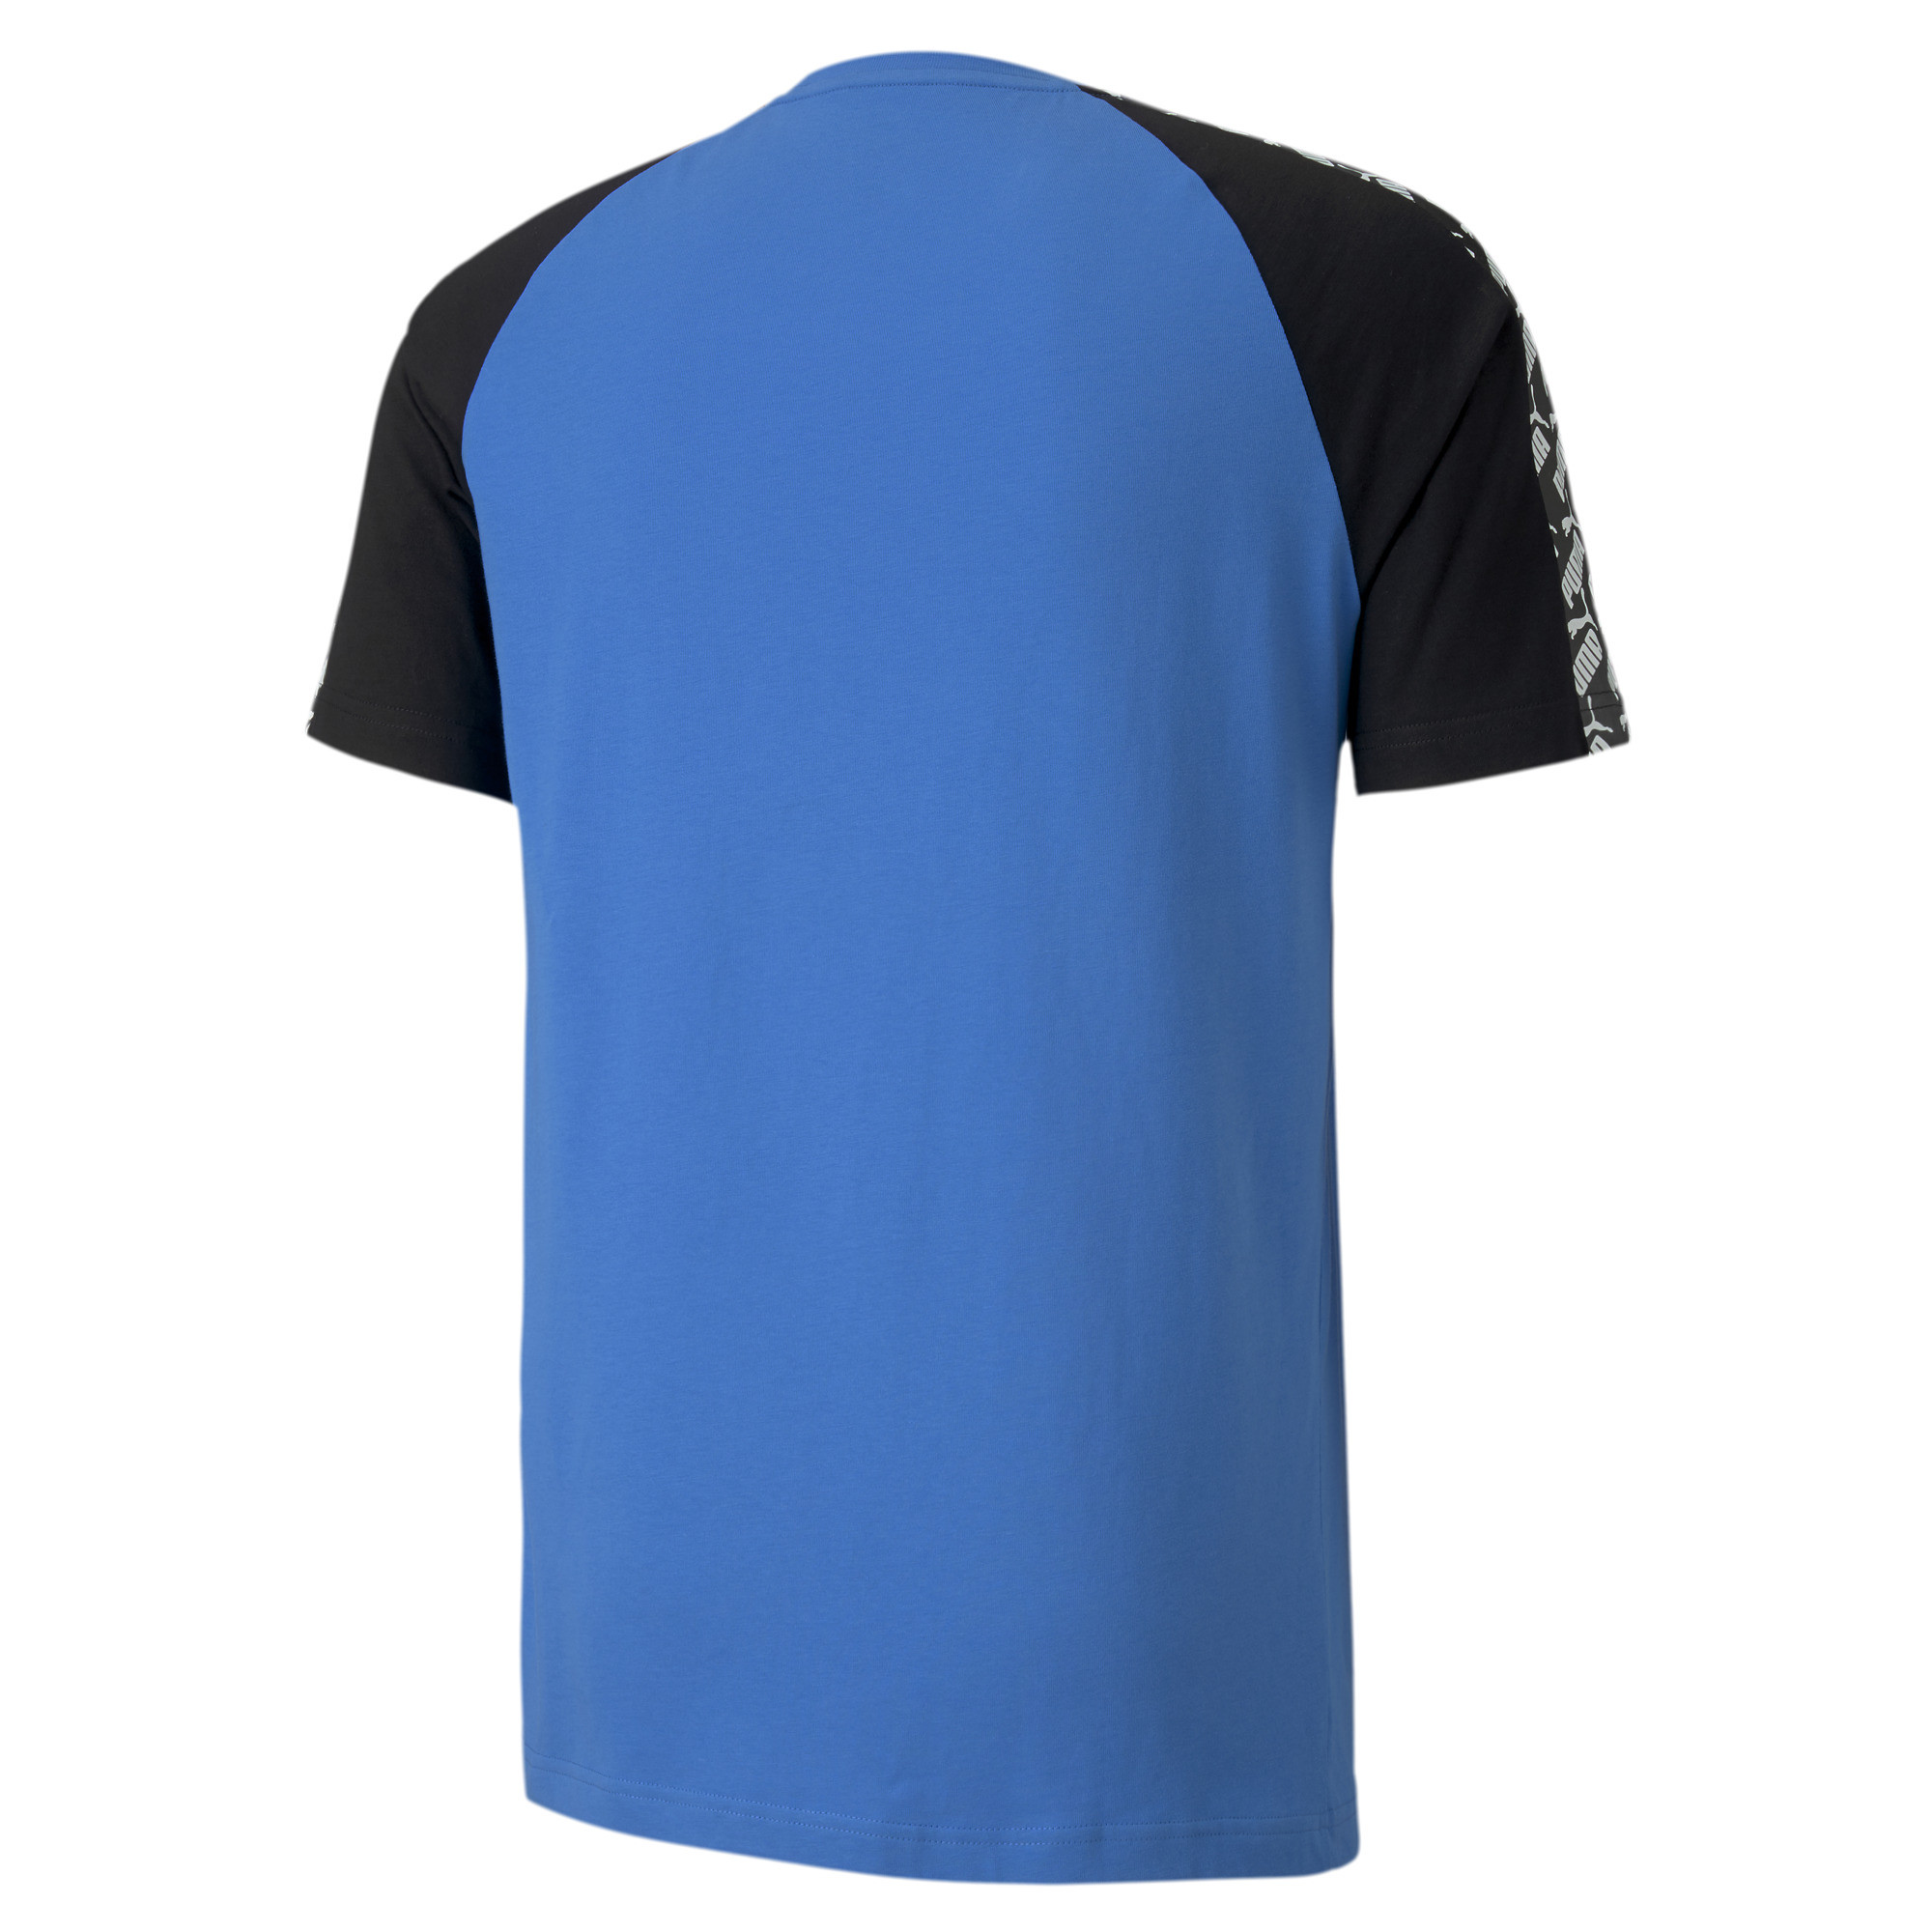 PUMA-Amplified-Men-039-s-Raglan-Tee-Men-Tee-Basics thumbnail 19